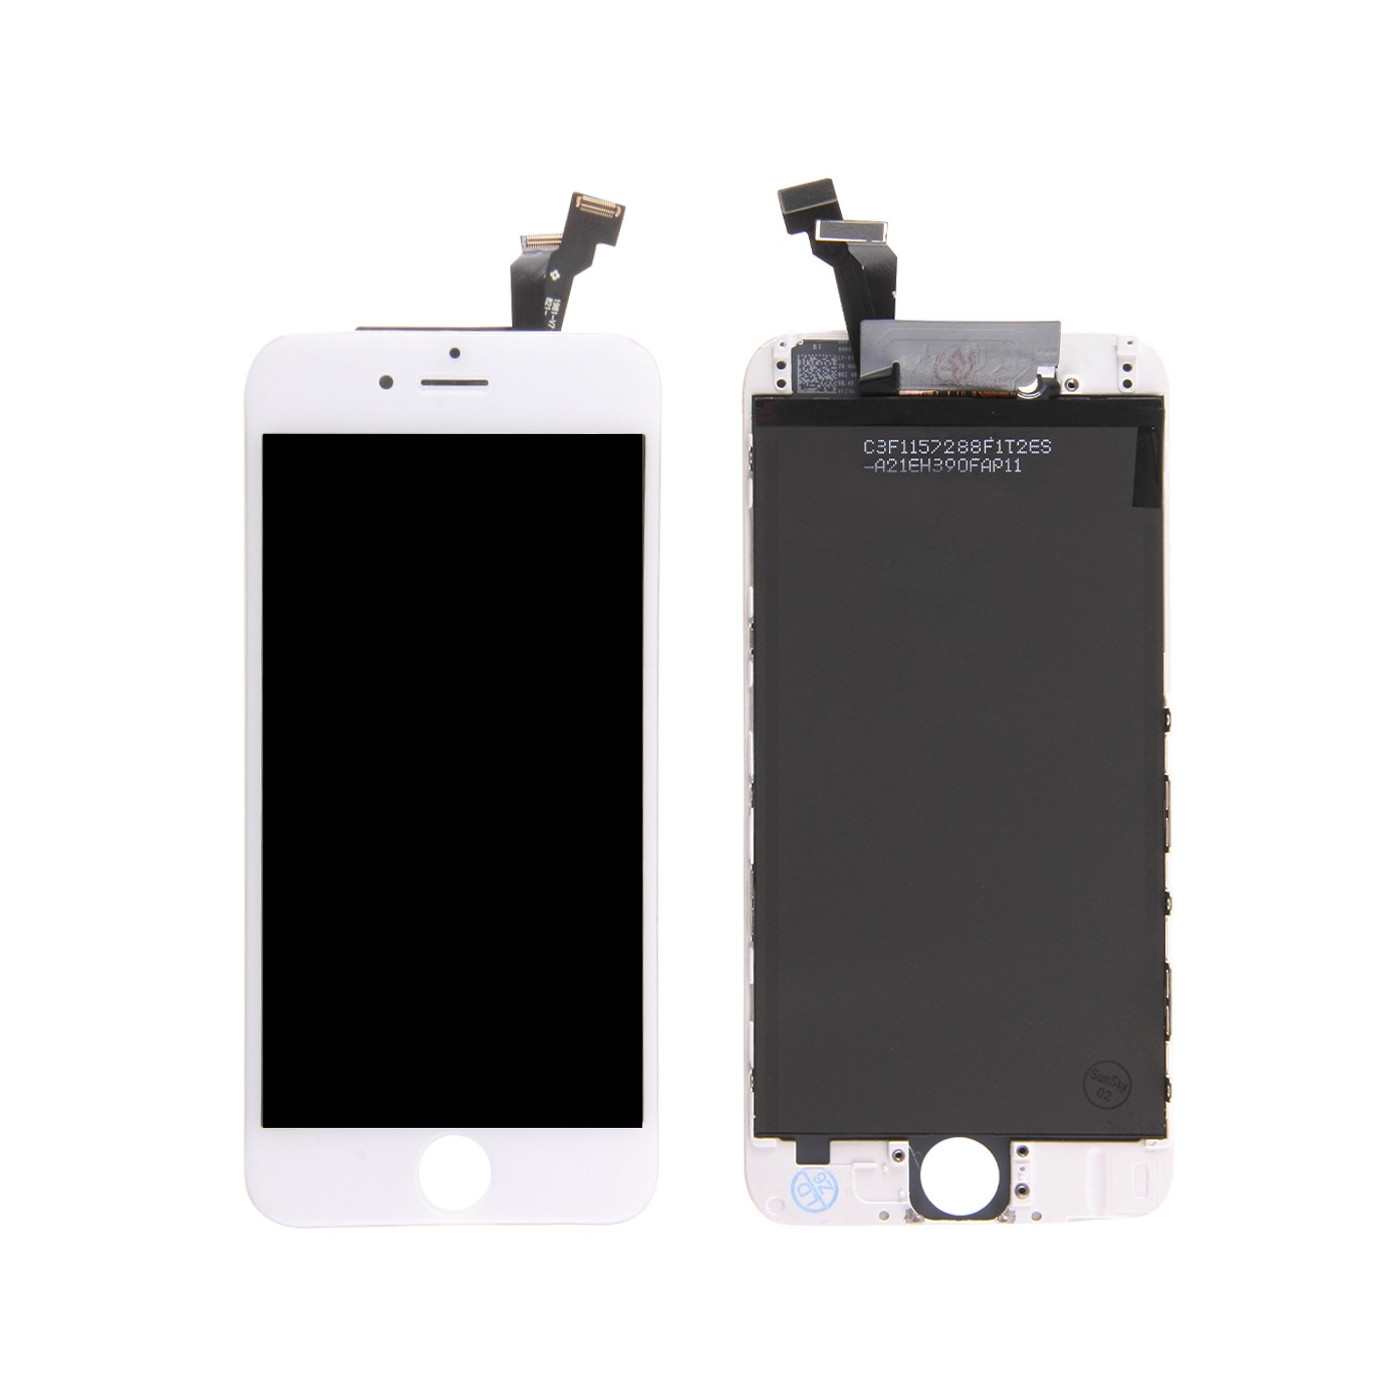 PANTALLA LCD TÁCTIL DE CRISTAL para Apple iPhone 6 WHITE TIANMA ORIGINAL SCREEN